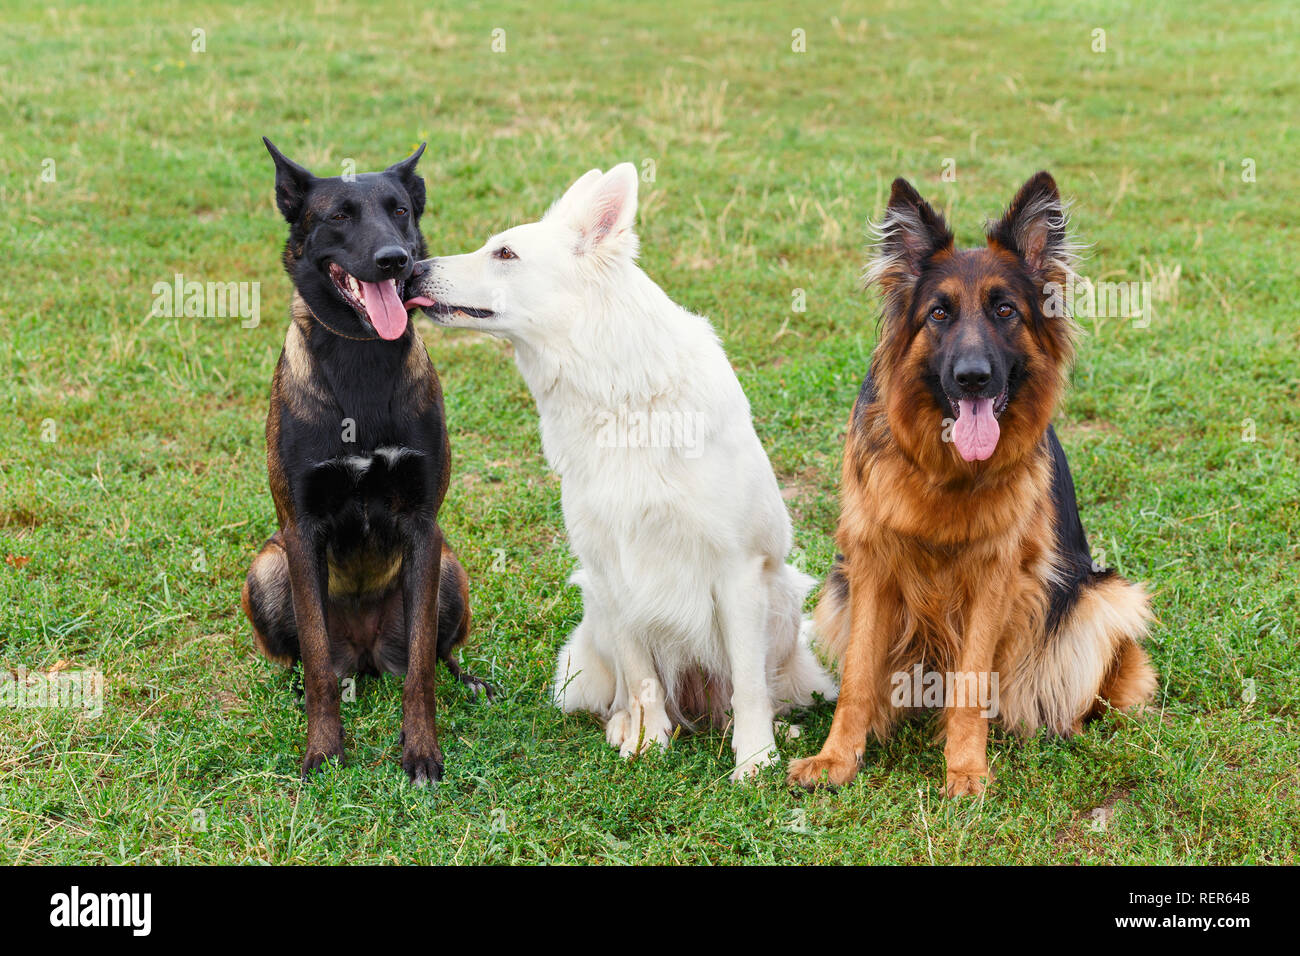 Dogs sitting on the lawn and depict a love triangle - Stock Image